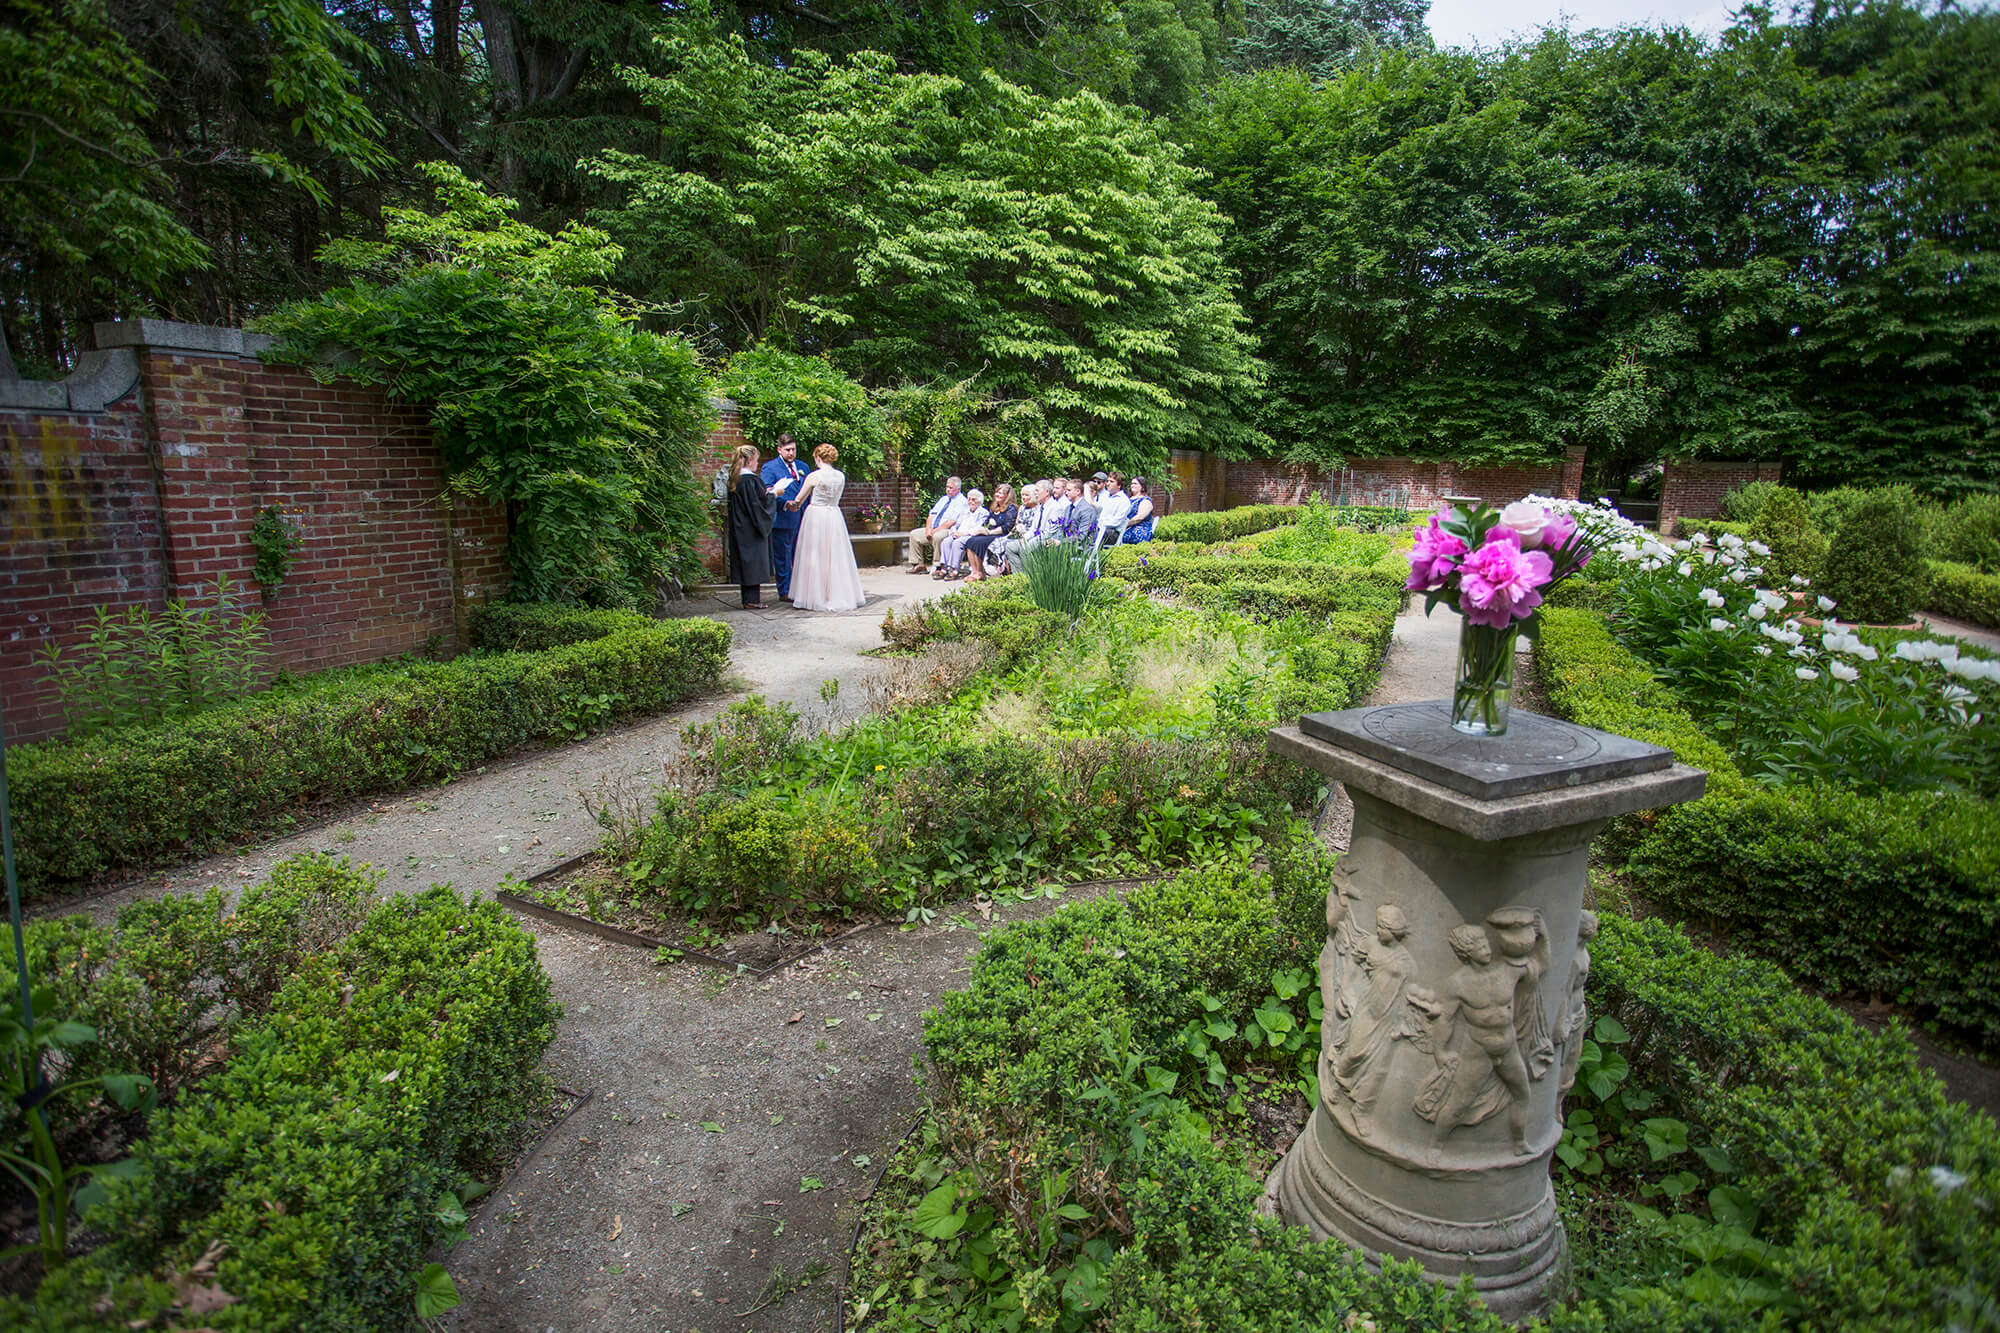 Wedding photography of a ceremony in a flower garden in New Hampshire